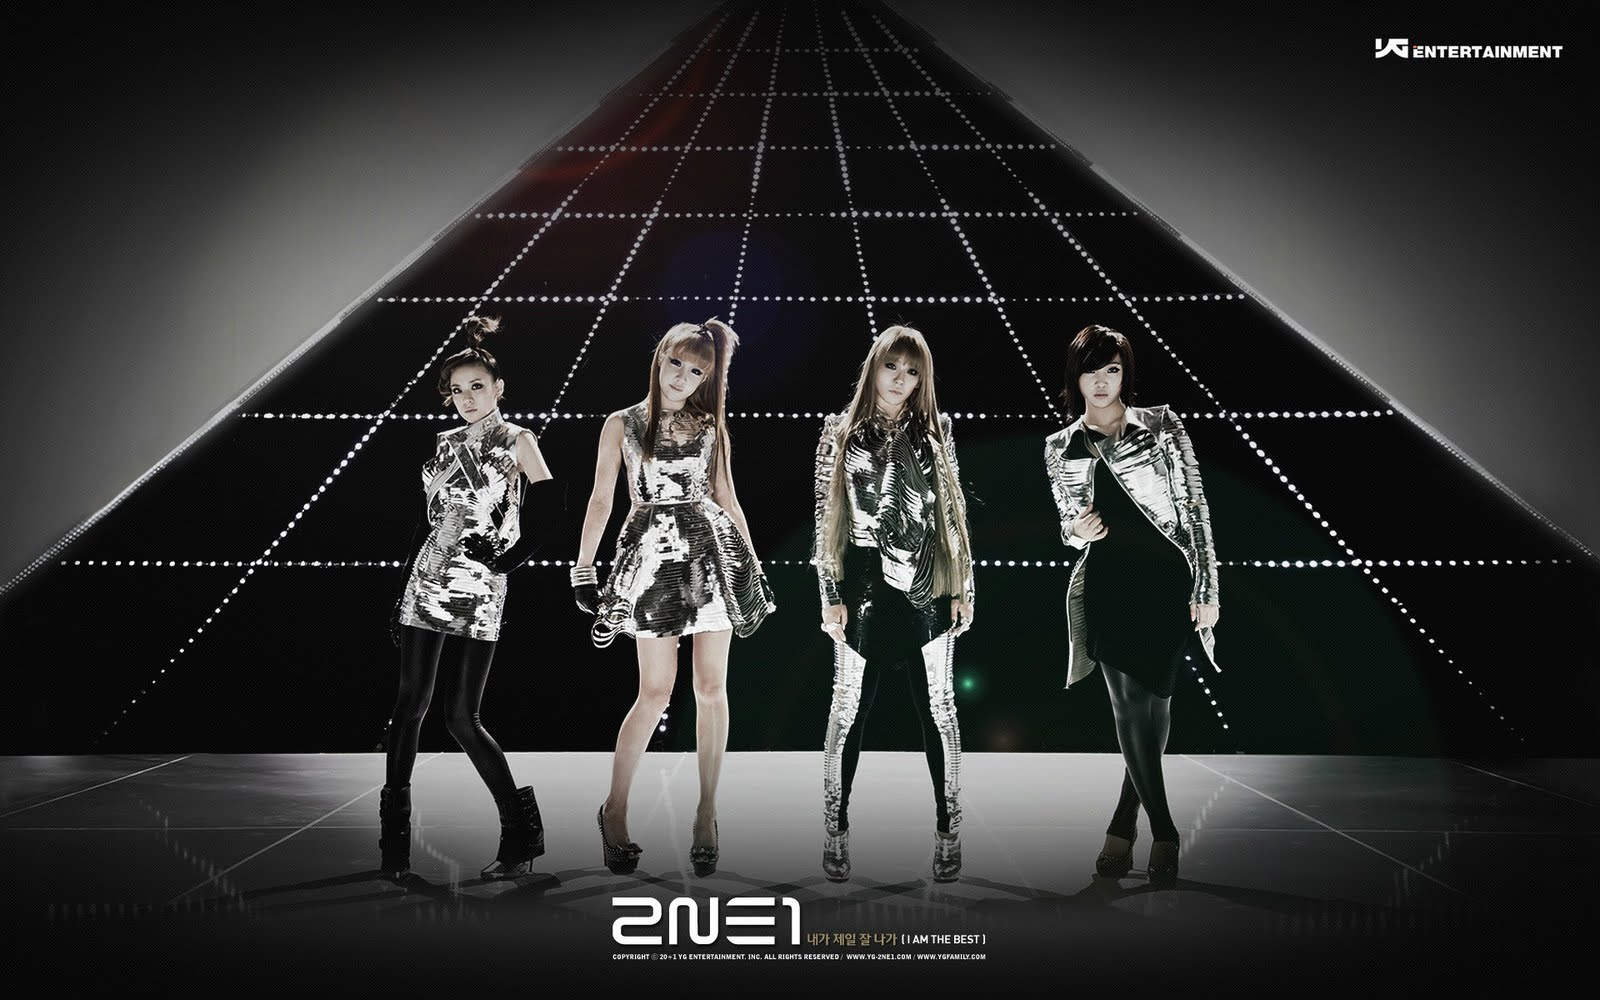 trololo blogg: Wallpaper 2ne1